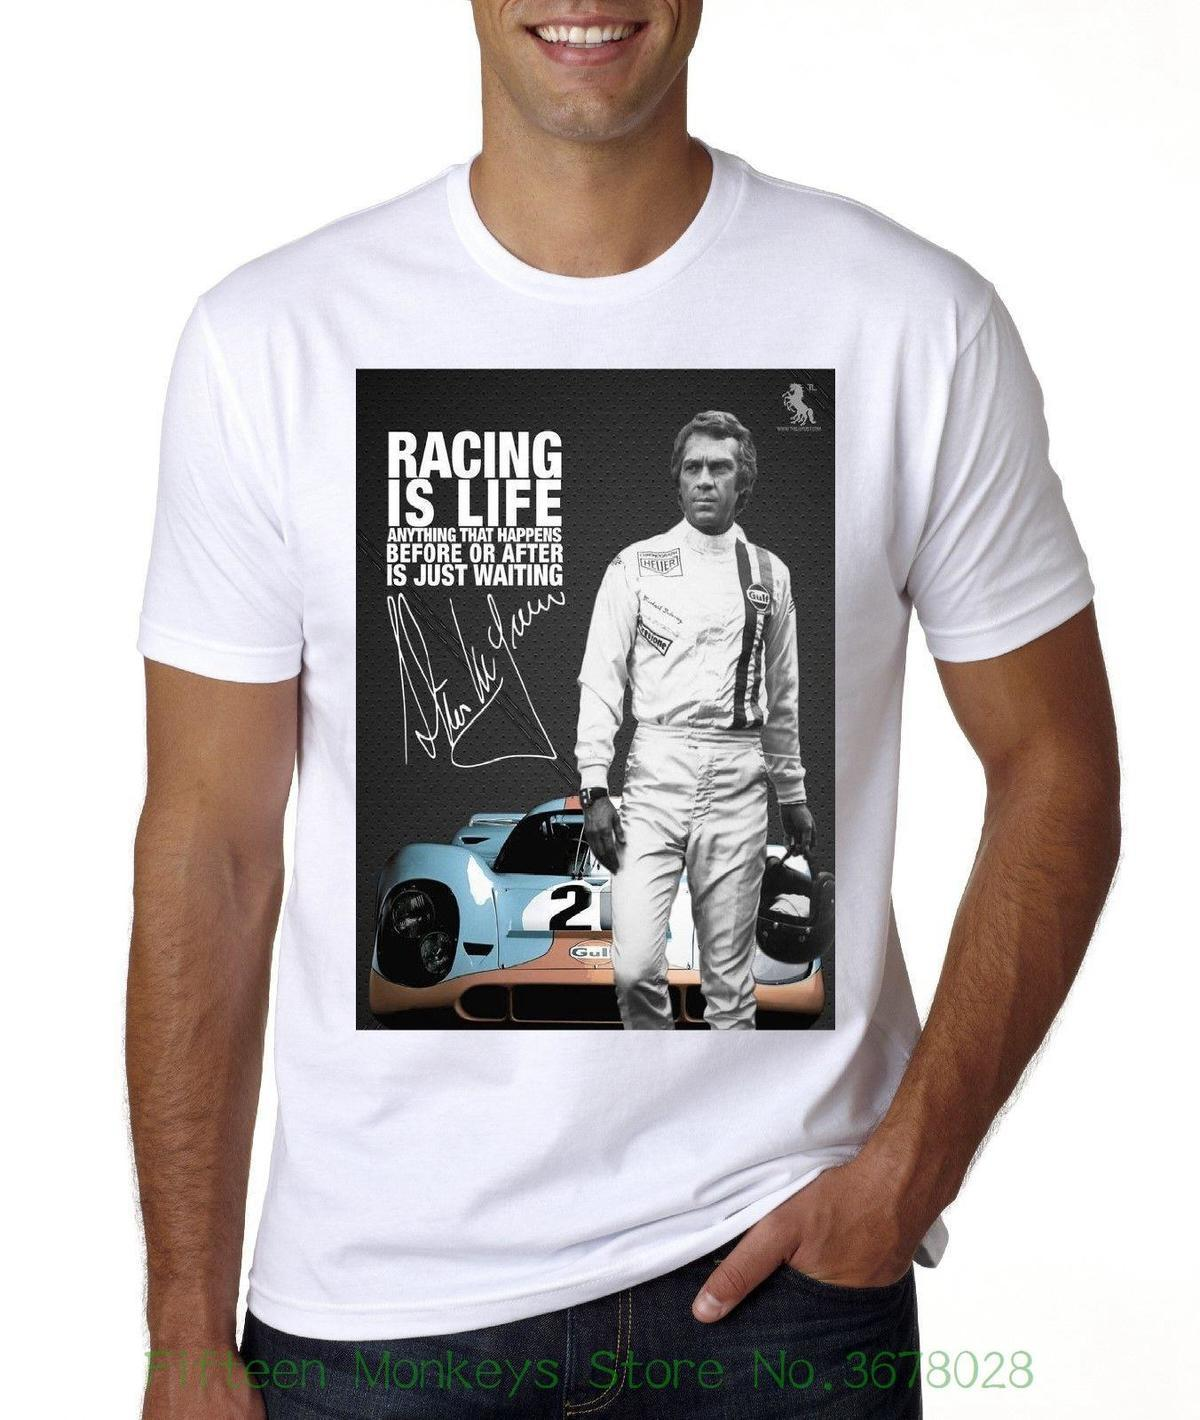 c213ba9b4 Fashion T Shirts Slim Fit O Neck New Steve Mcqueen Le Mans T Shirt Sizes  From Med 3xl Mens Dress Shirt Patriotic T Shirts From Lijian064, $12.08|  DHgate.Com